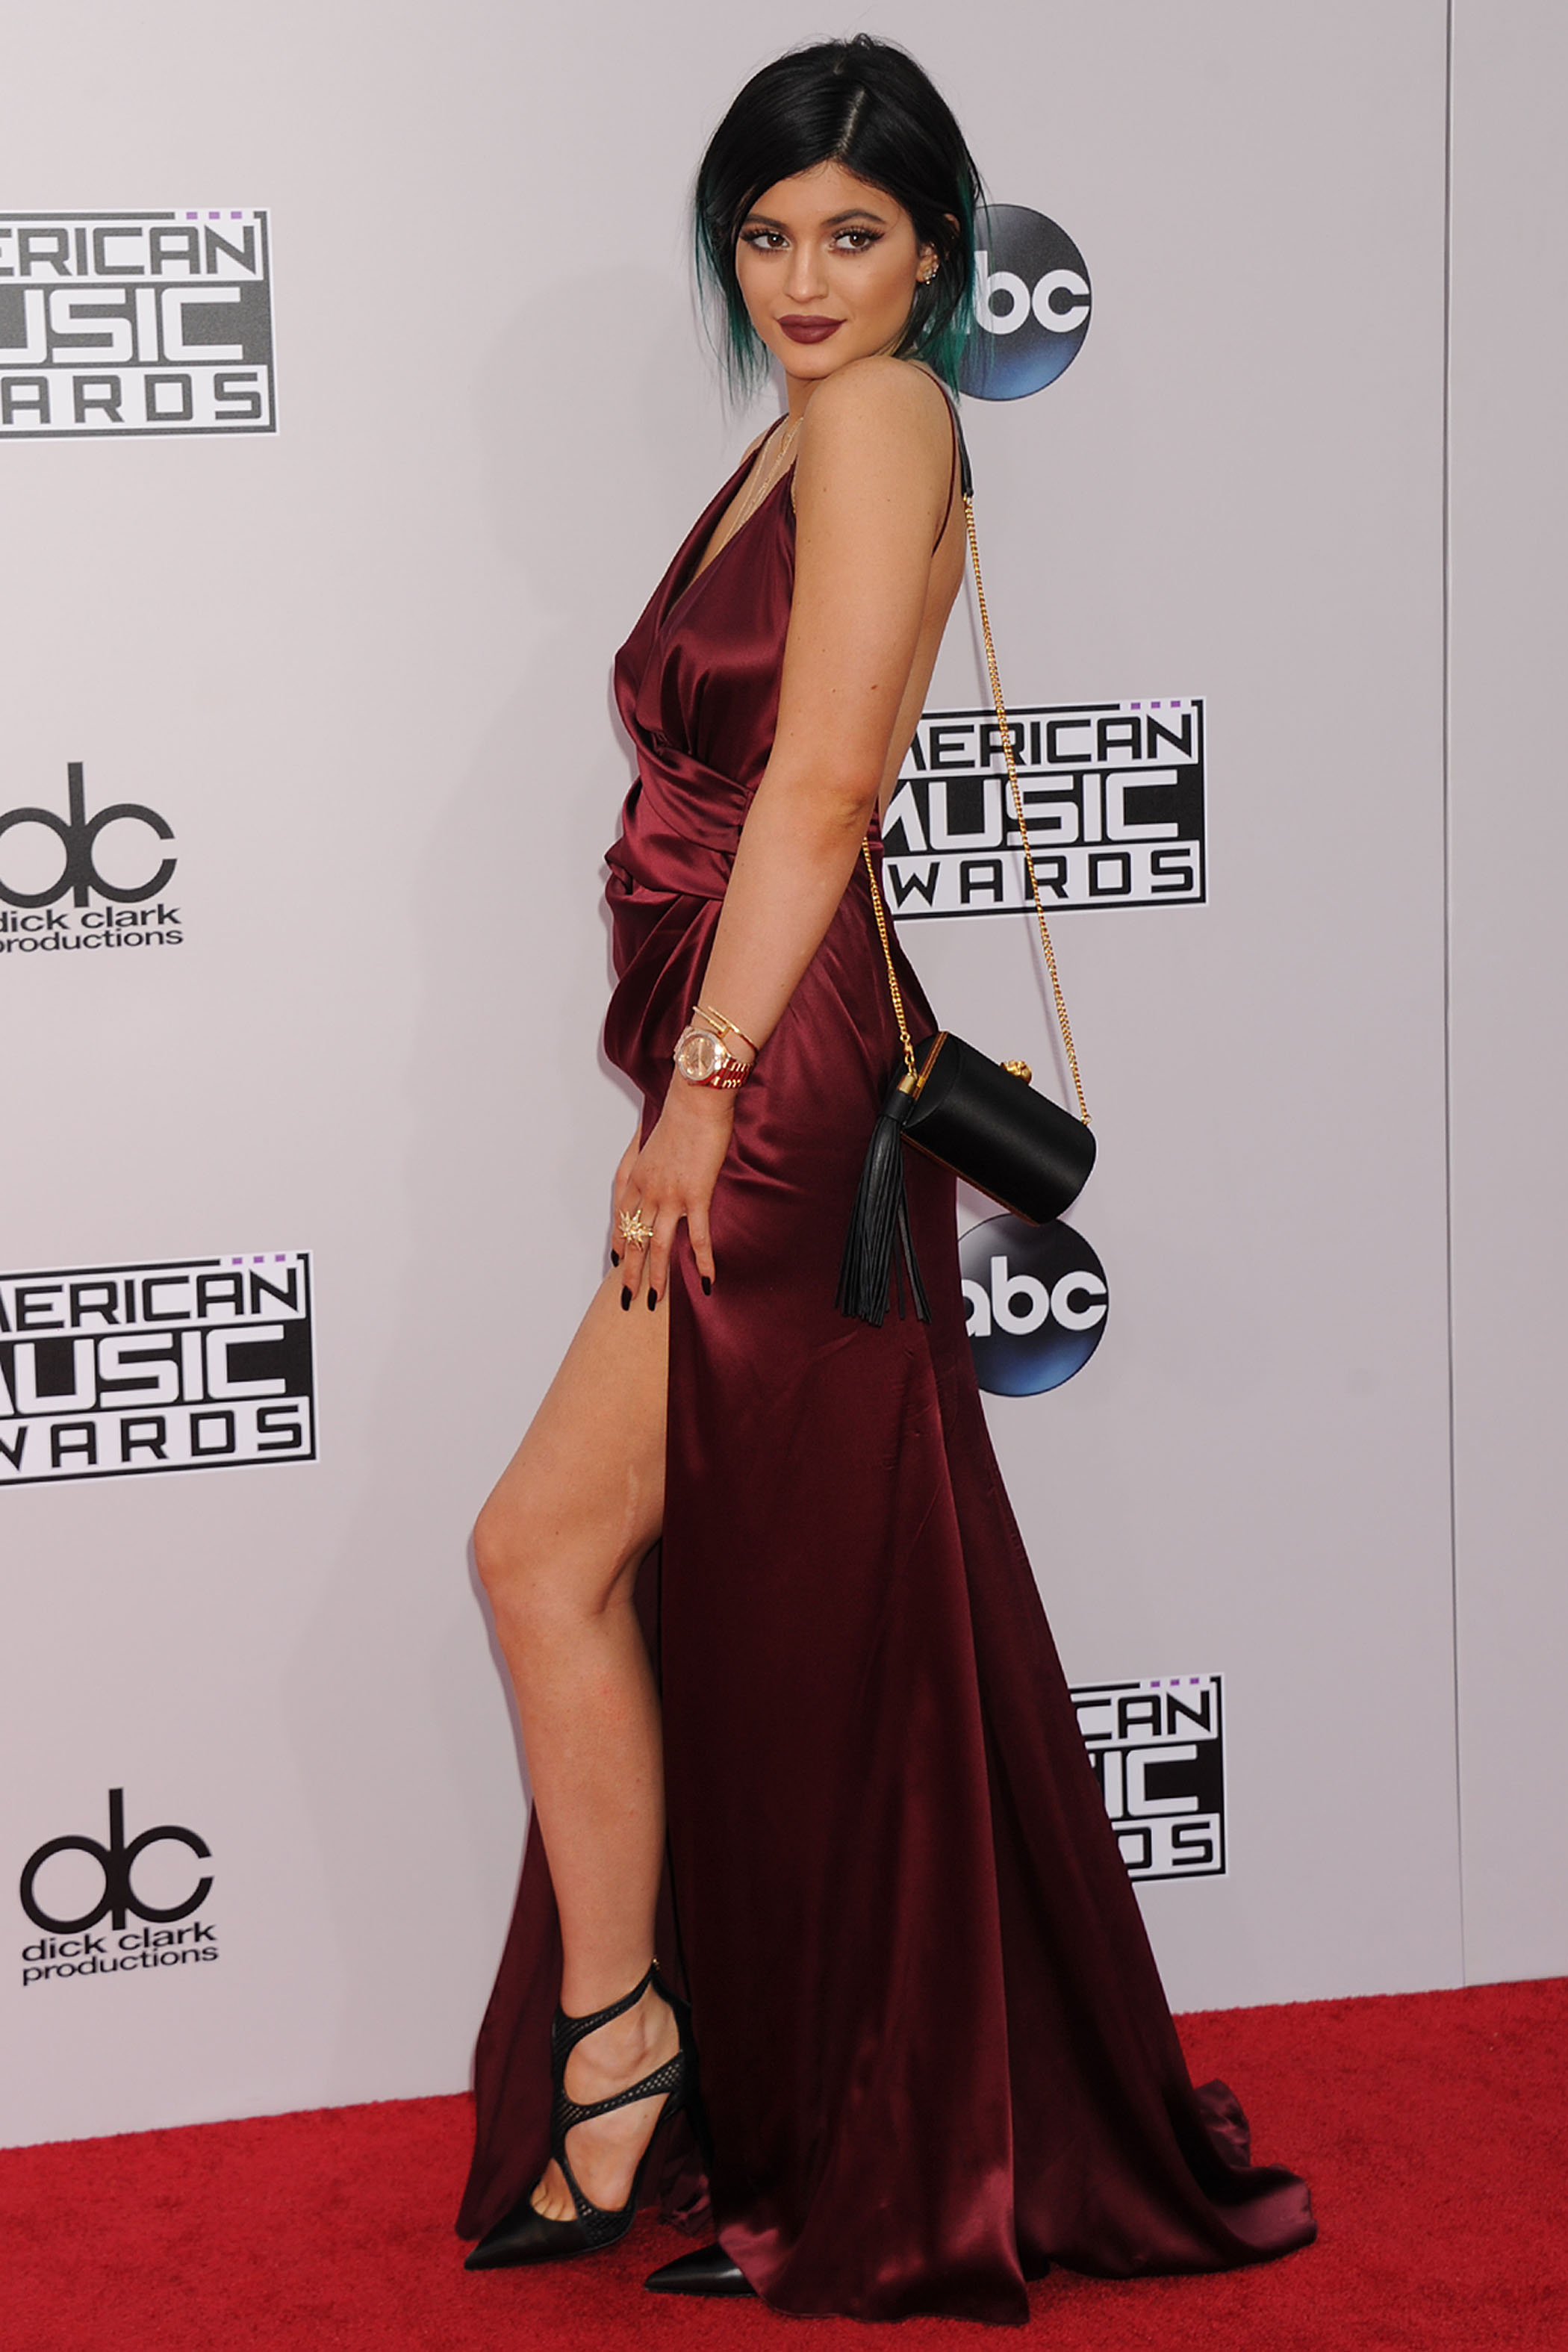 Kylie Jenner 2014 American Music Awards LA 5 SAWFIRST